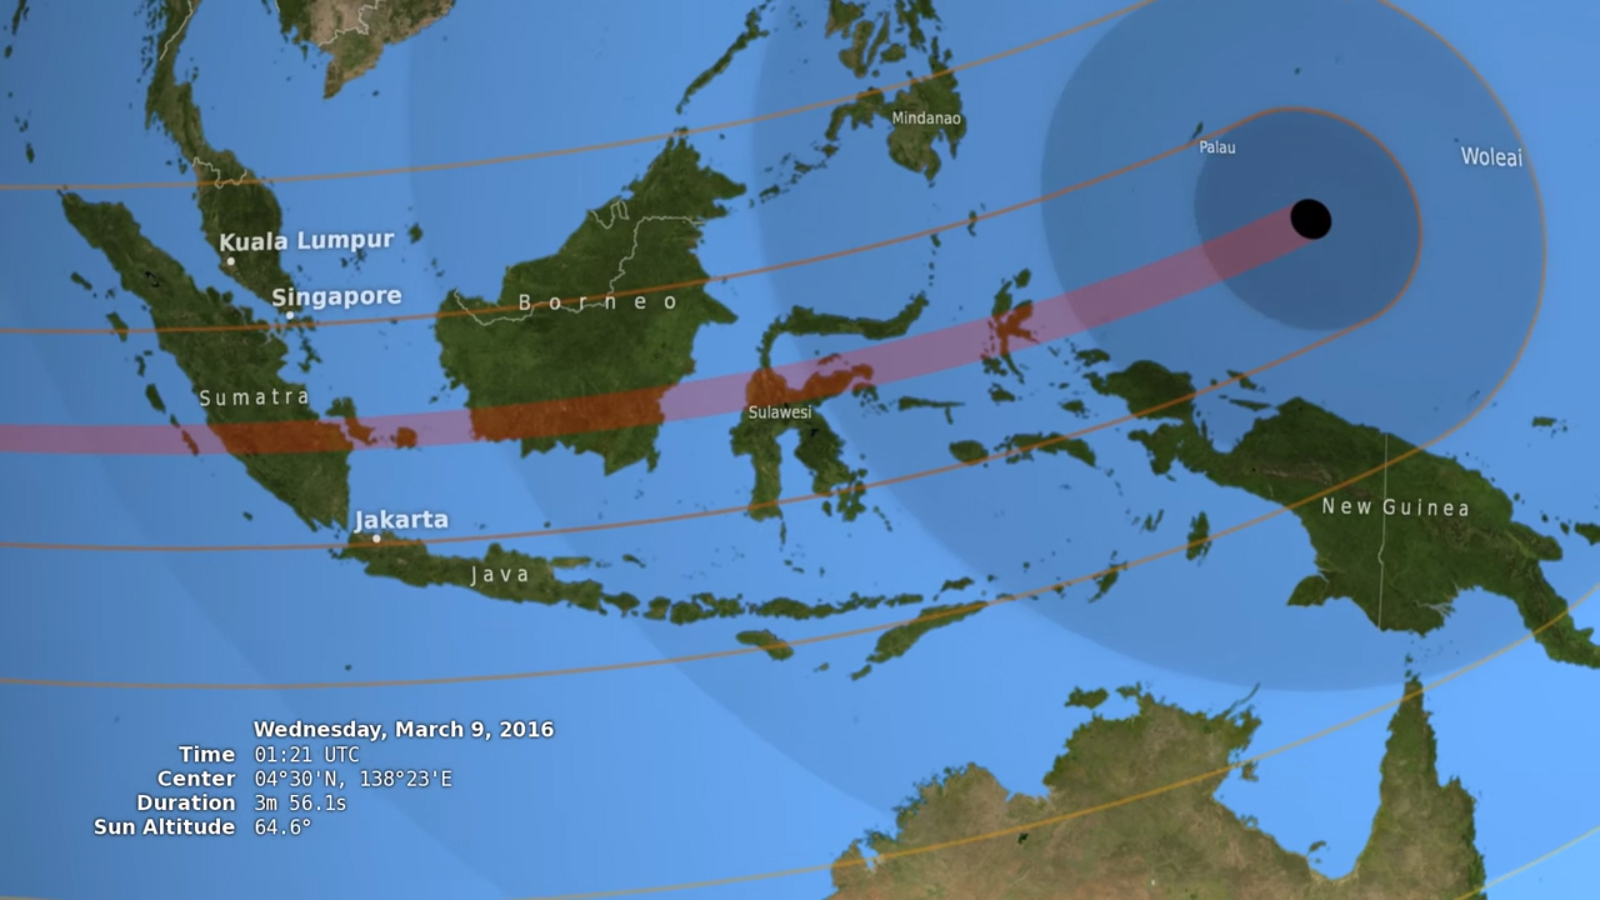 March 2016 Total Solar Eclipse Path Image